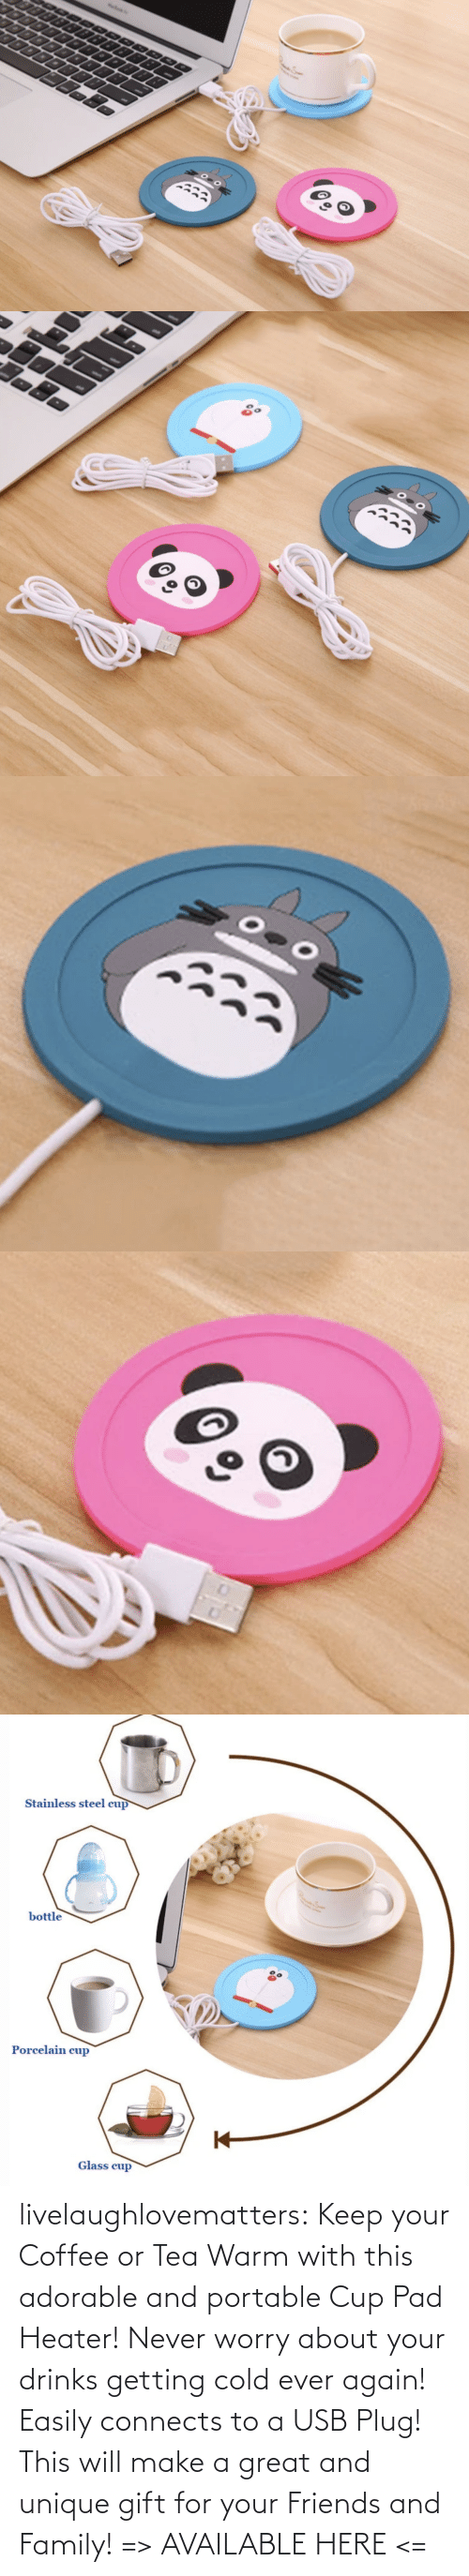 Coffee: livelaughlovematters: Keep your Coffee or Tea Warm with this adorable and portable Cup Pad Heater! Never worry about your drinks getting cold ever again! Easily connects to a USB Plug! This will make a great and unique gift for your Friends and Family! => AVAILABLE HERE <=